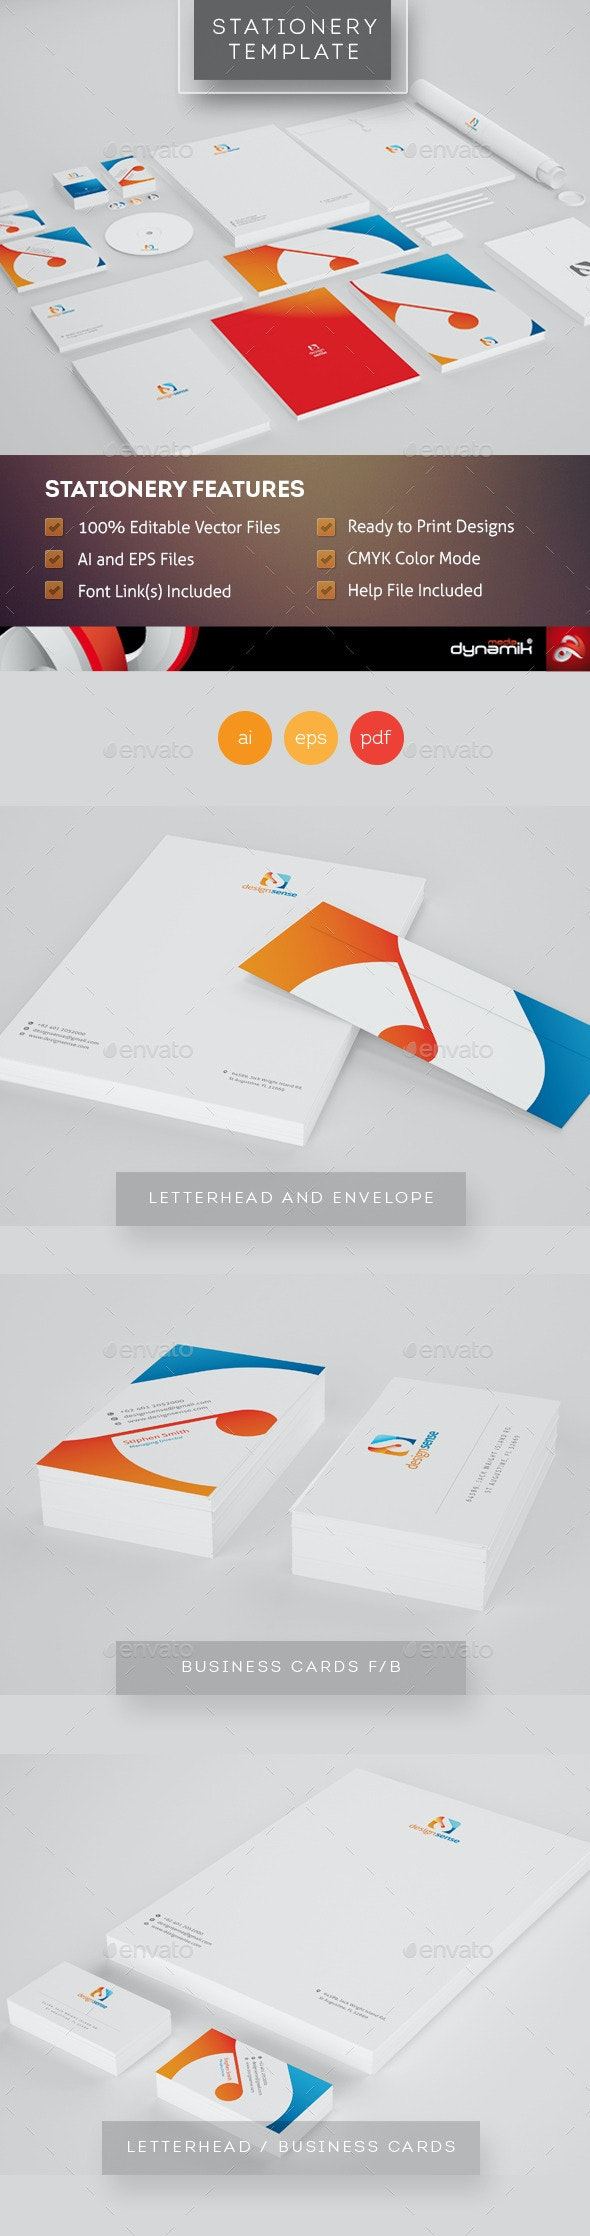 Design Sense - Corporate Identity Template - Stationery Print Templates